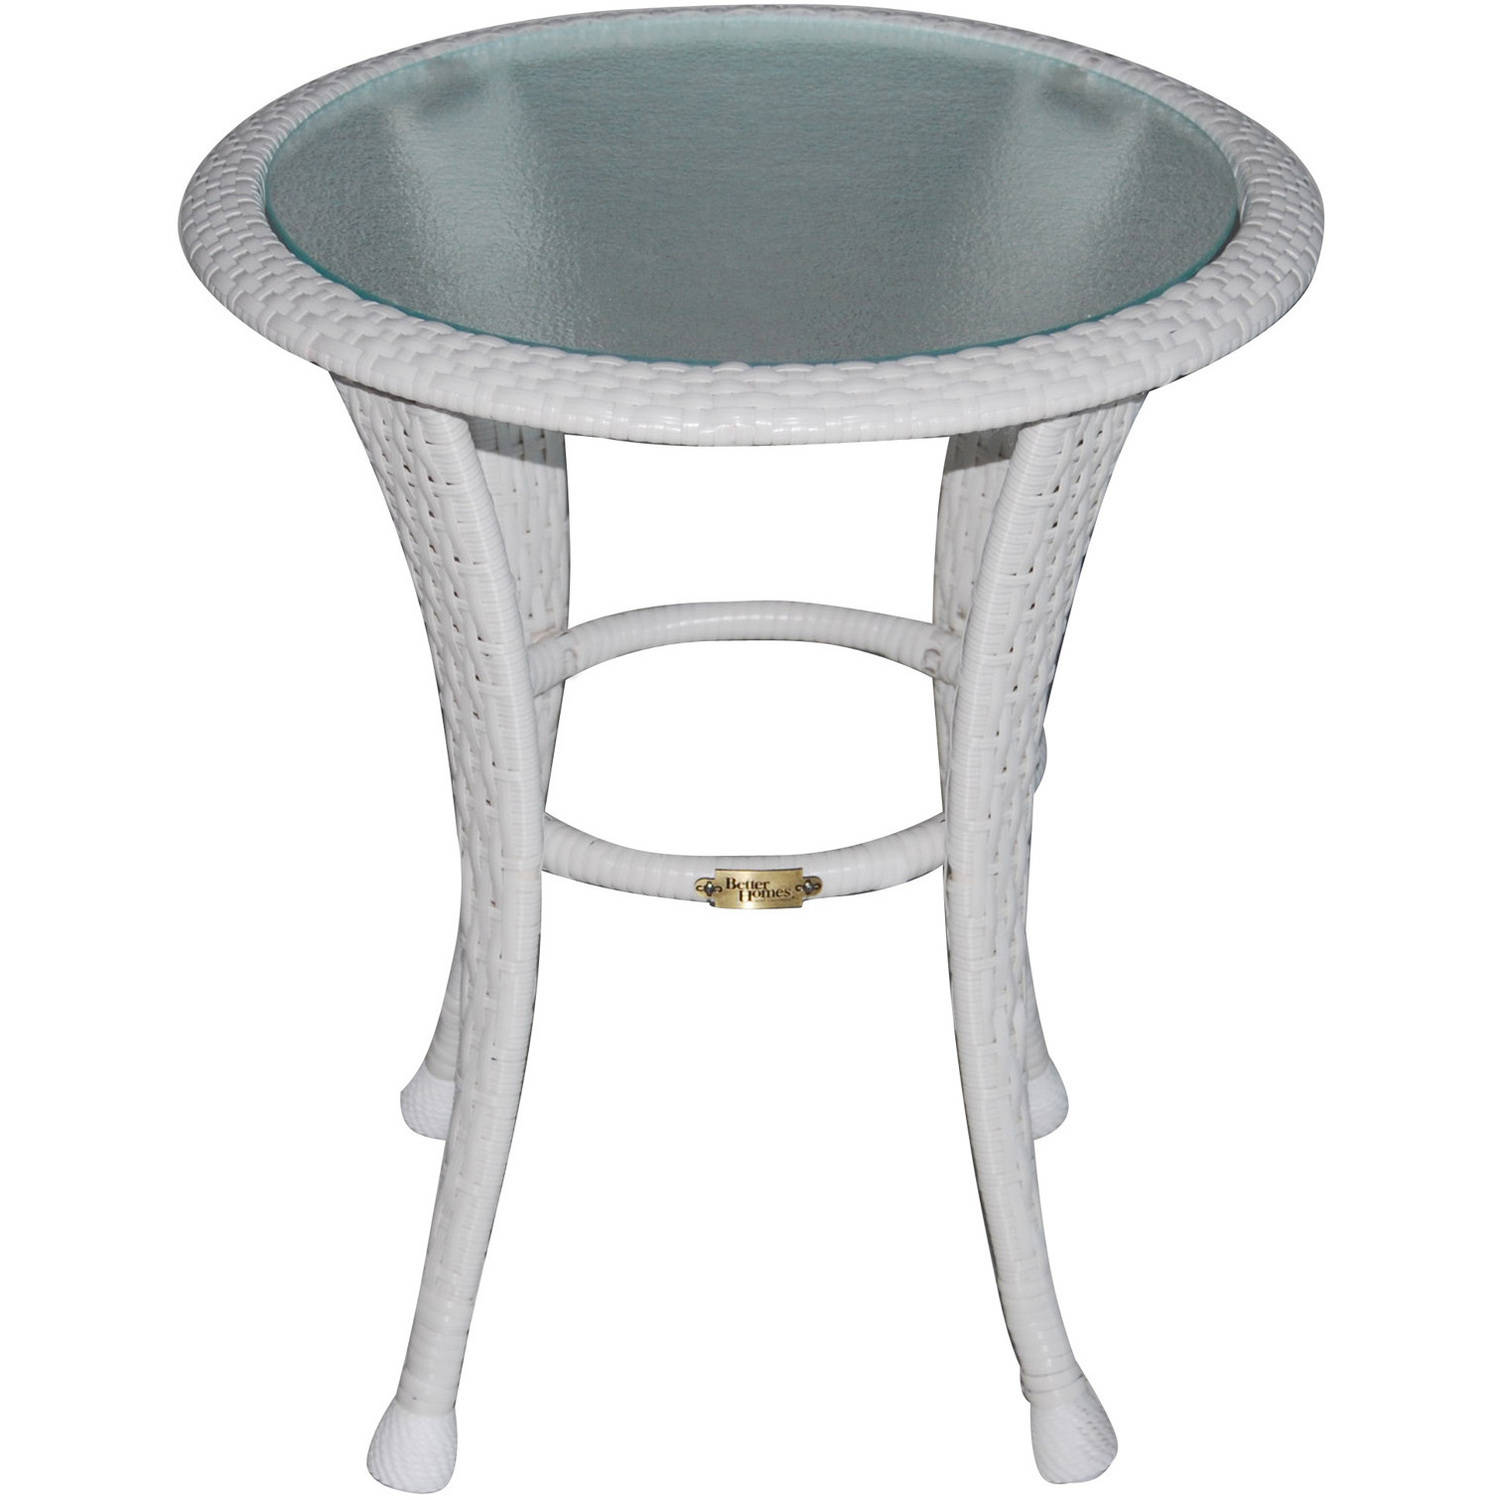 better homes and gardens colebrook outdoor glass top side table white farmhouse accent mirrored bedside lamps modern metal end tables martin home office furniture round nightstand